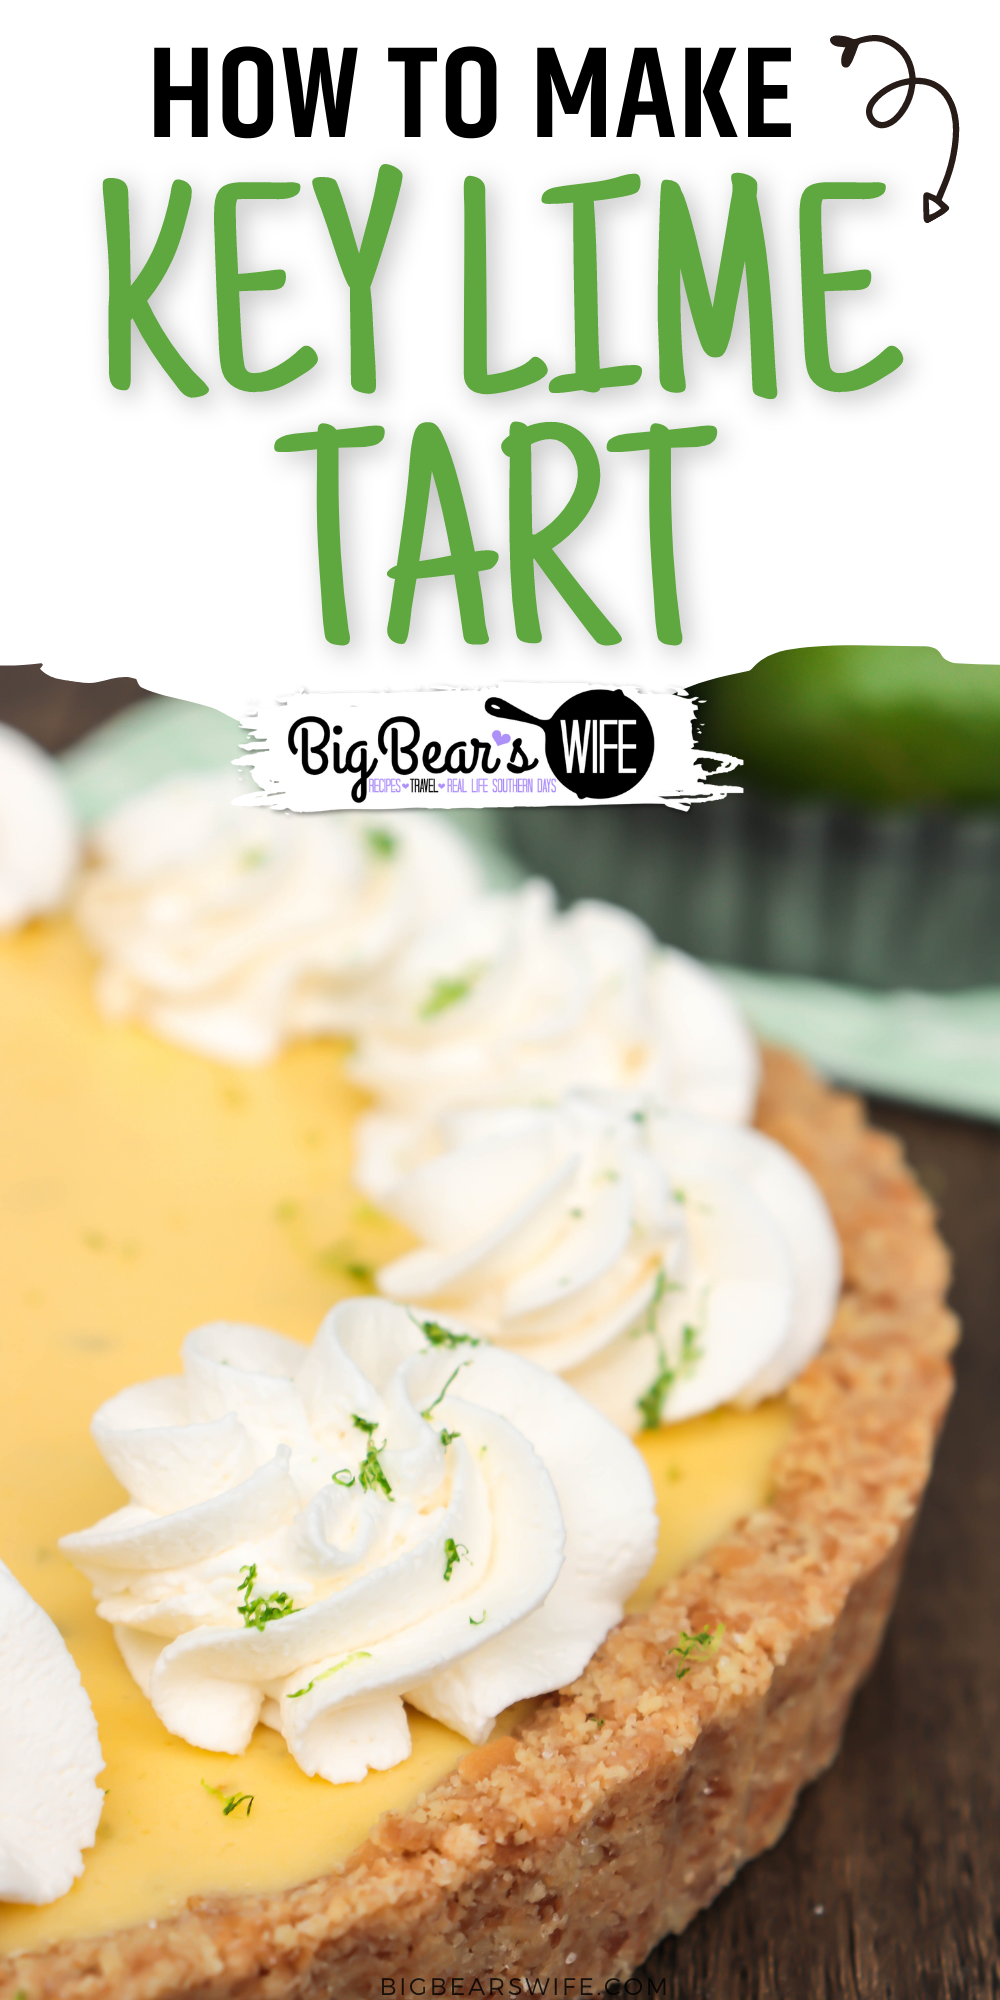 This easy Key Lime Tart has a sweet vanilla wafer crust, a tart key lime filling and it's topped with swirls of whipped cream and sprinkled with lime zest! This dessert is light and perfect for spring! via @bigbearswife